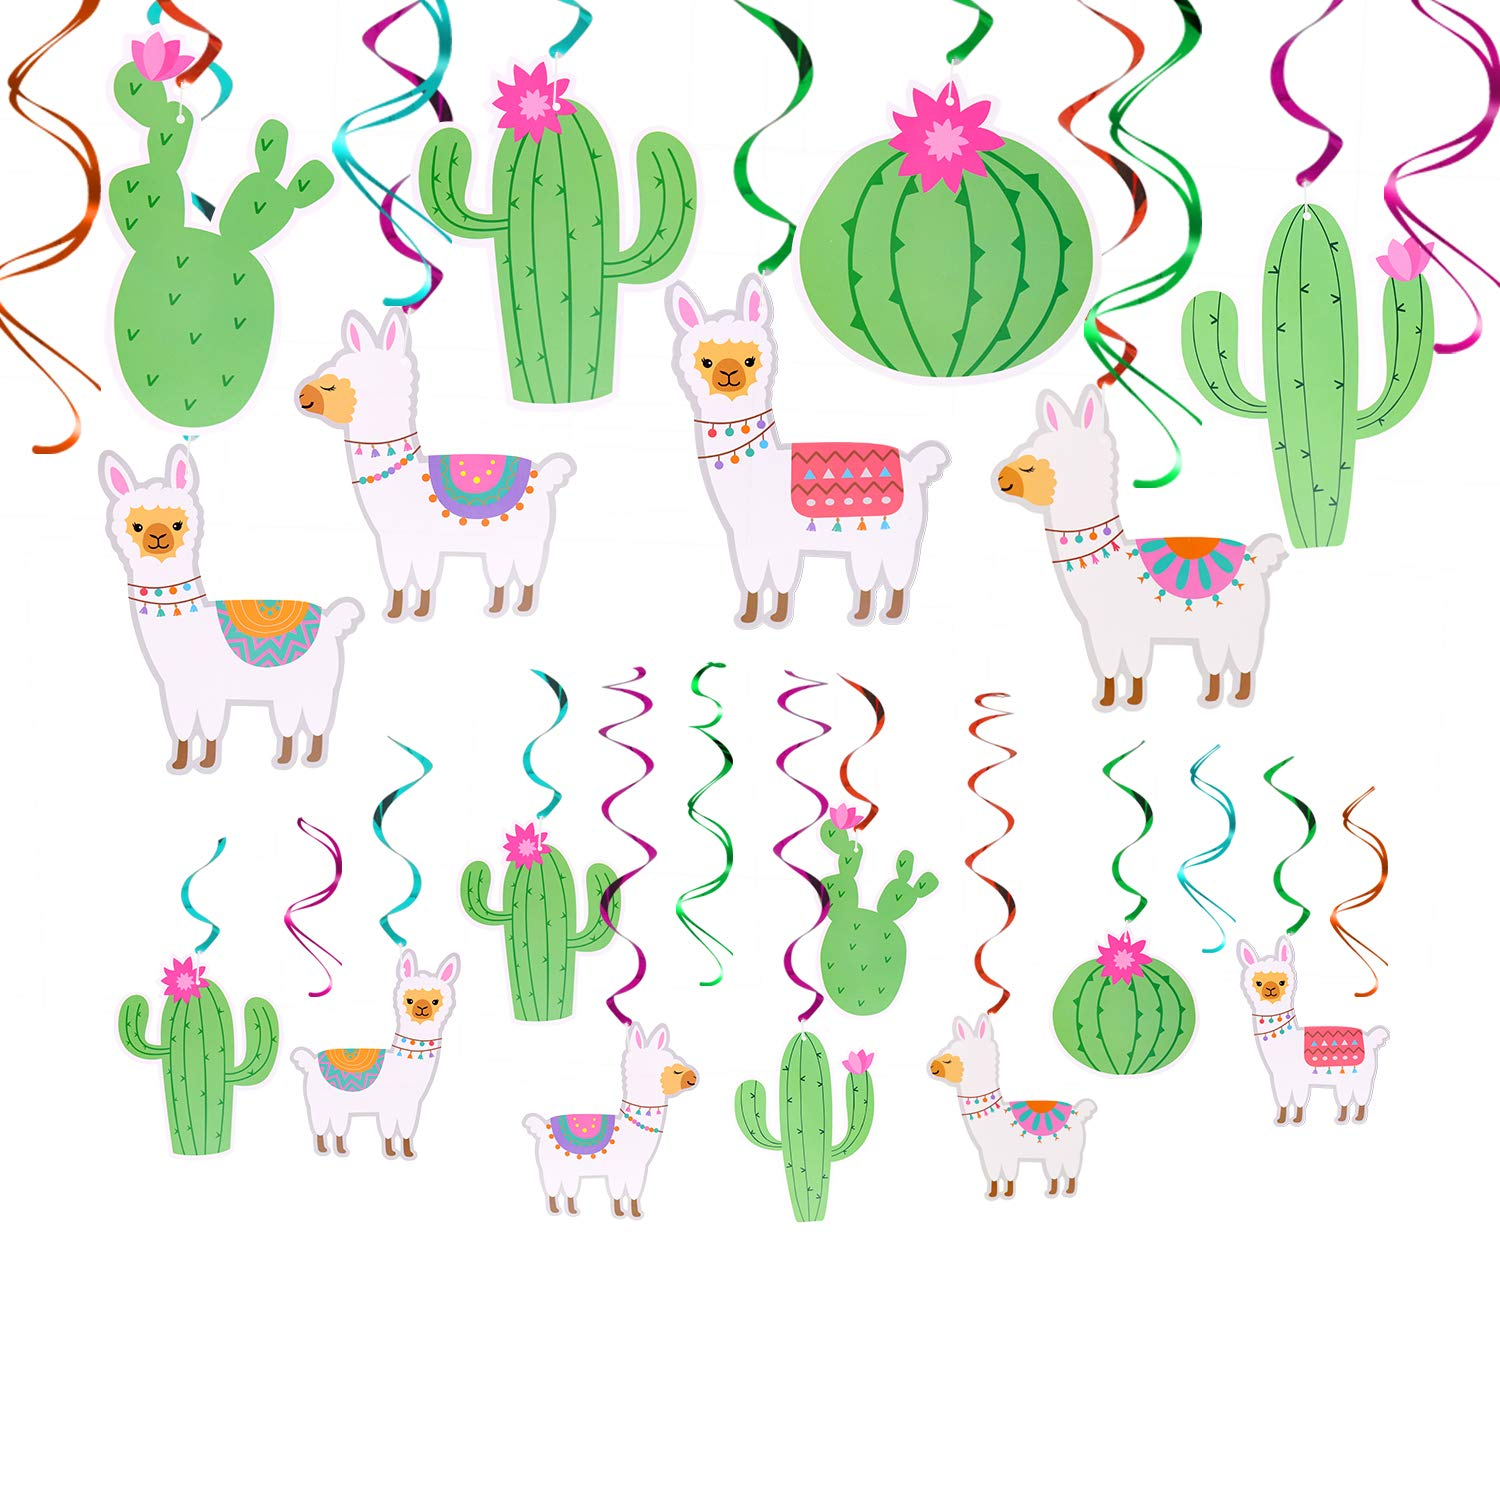 32Ct Llama Cactus Hanging Swirl Decorations, Llama Themed Birthday Party Supplies, Bolivian Peru Alpaca Party Cactus Baby Shower Succulent Party Home Decor